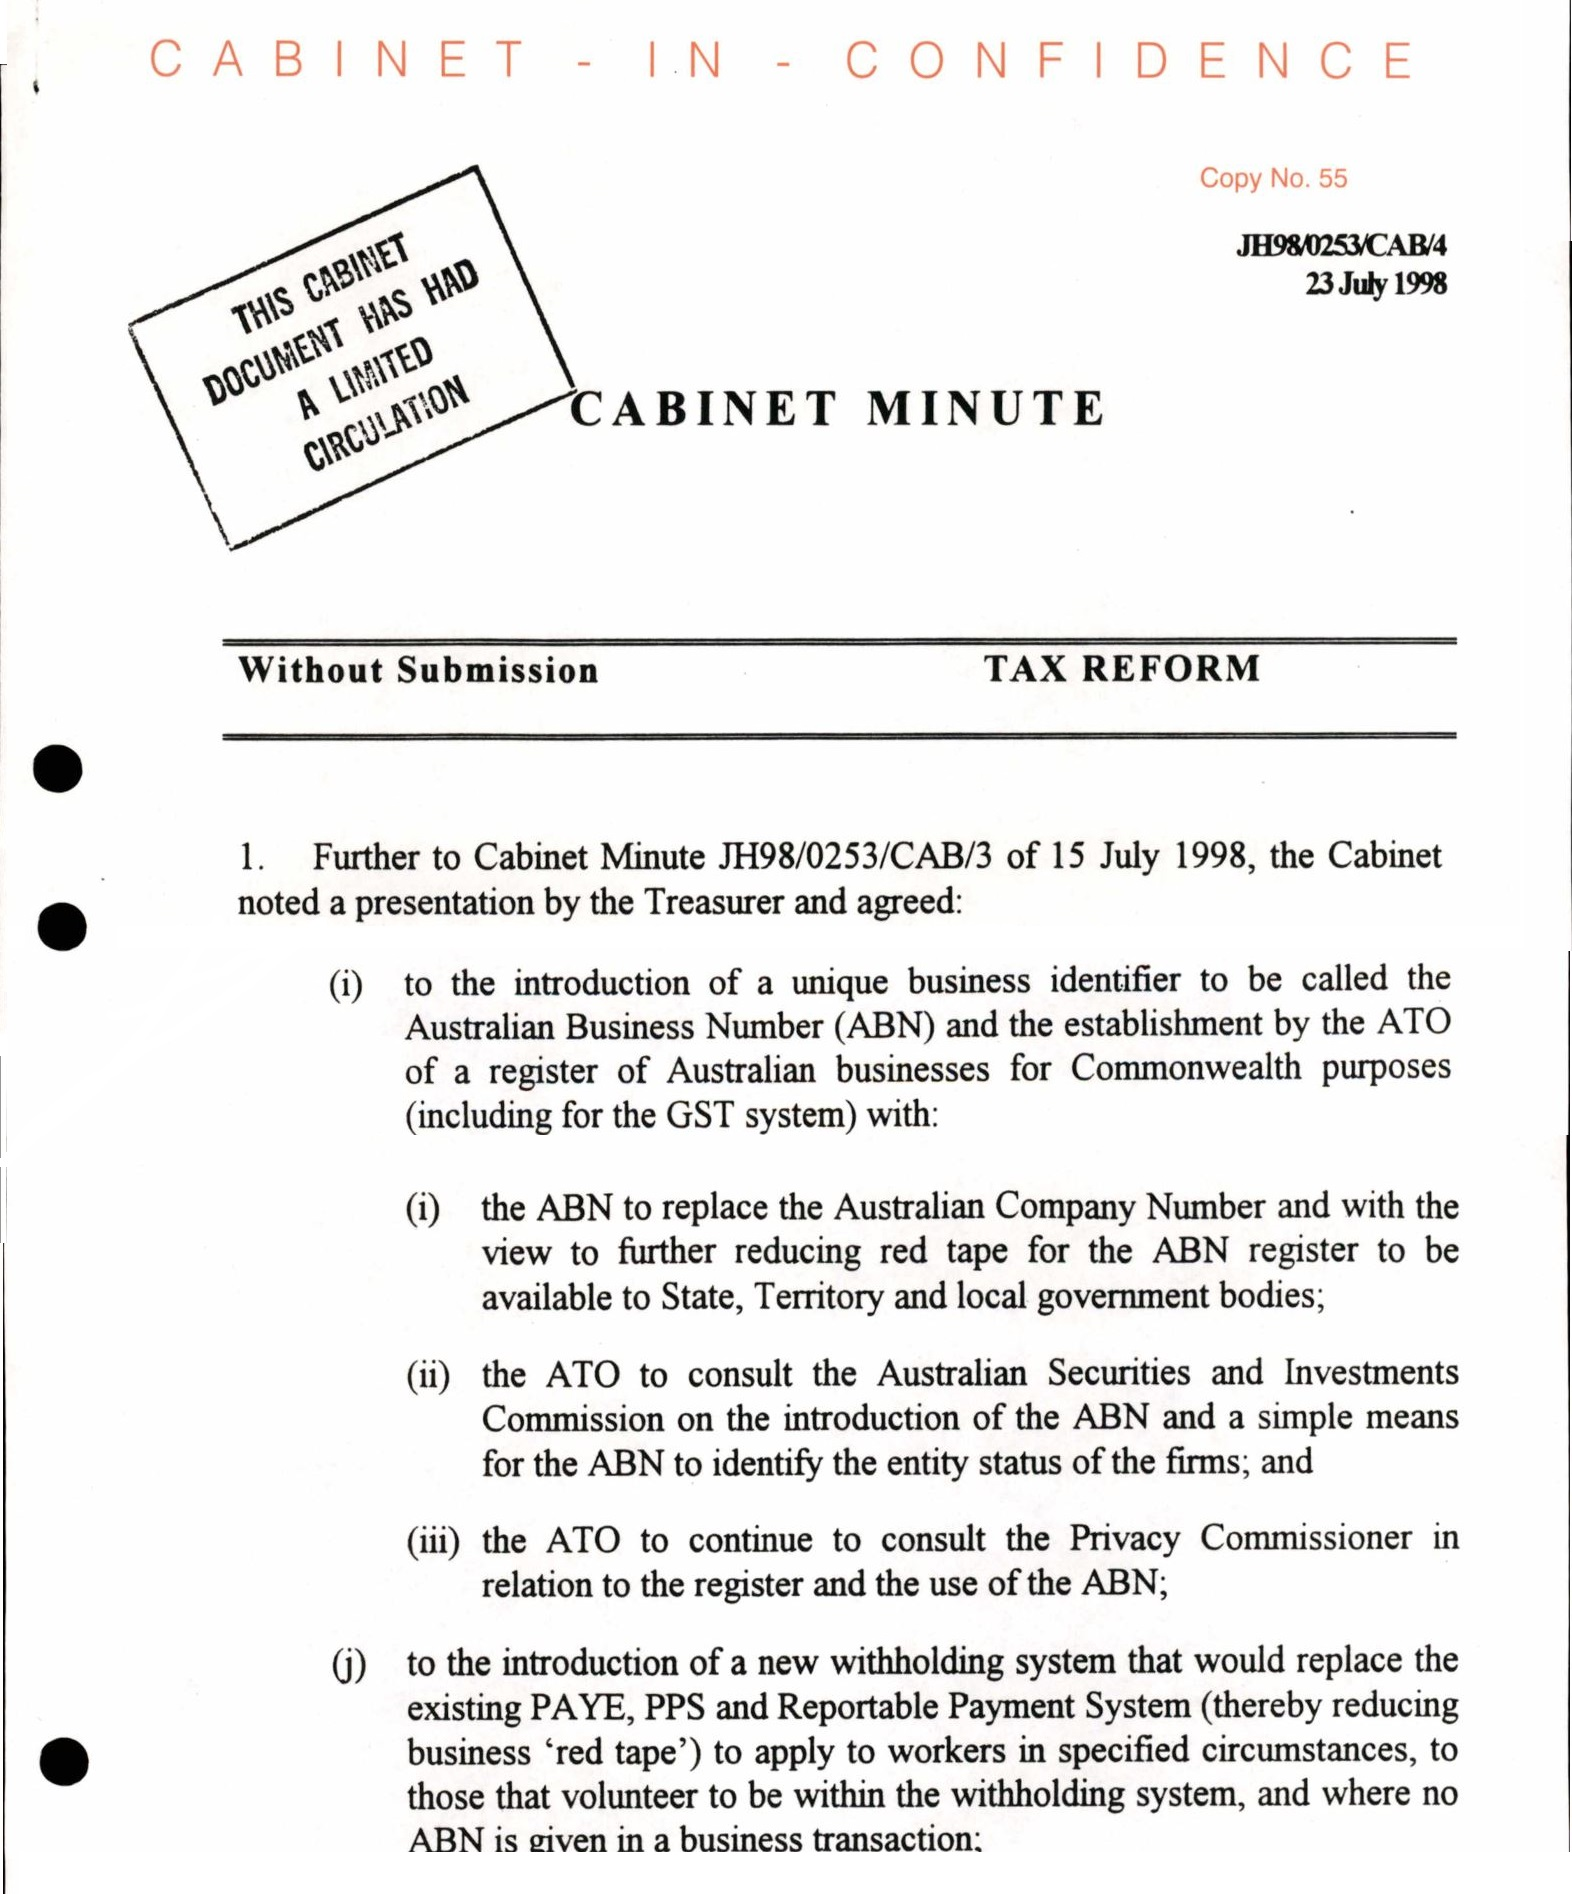 Cabinet papers 1998-99: How the GST became unstoppable_3